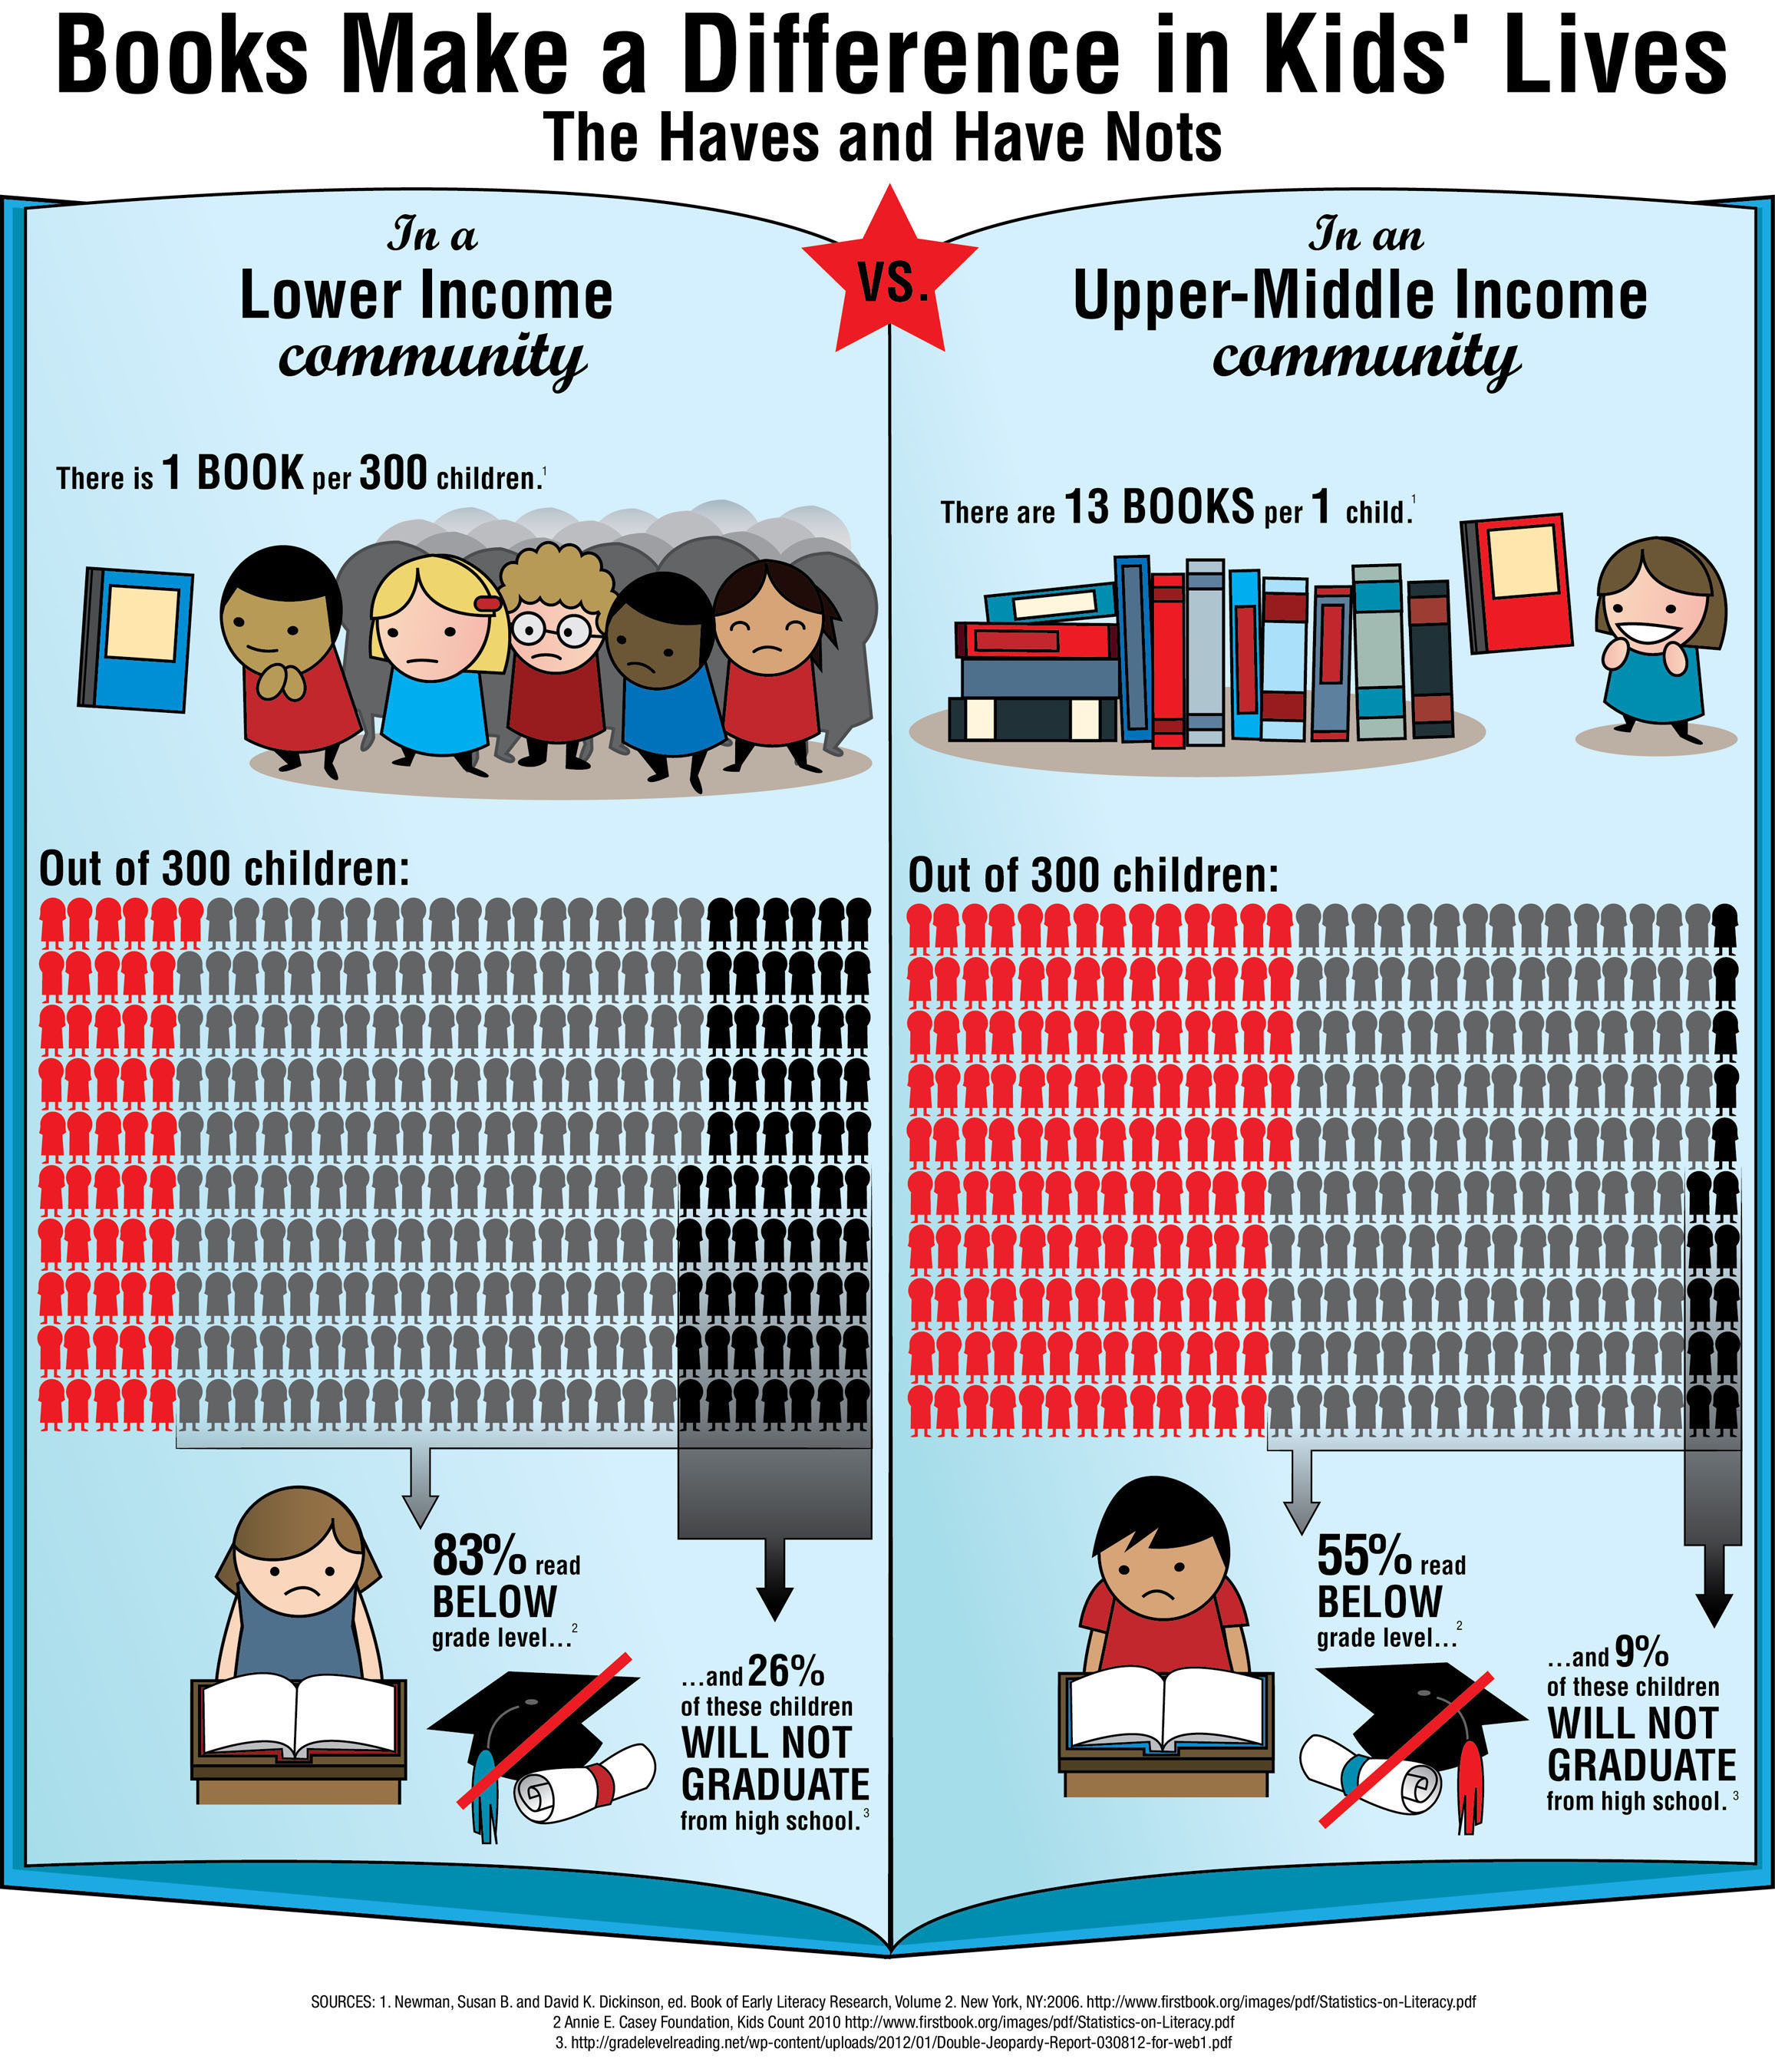 [INFOGRAPHIC] The Haves and the Have Nots: How Books Make a Difference in Children's Lives